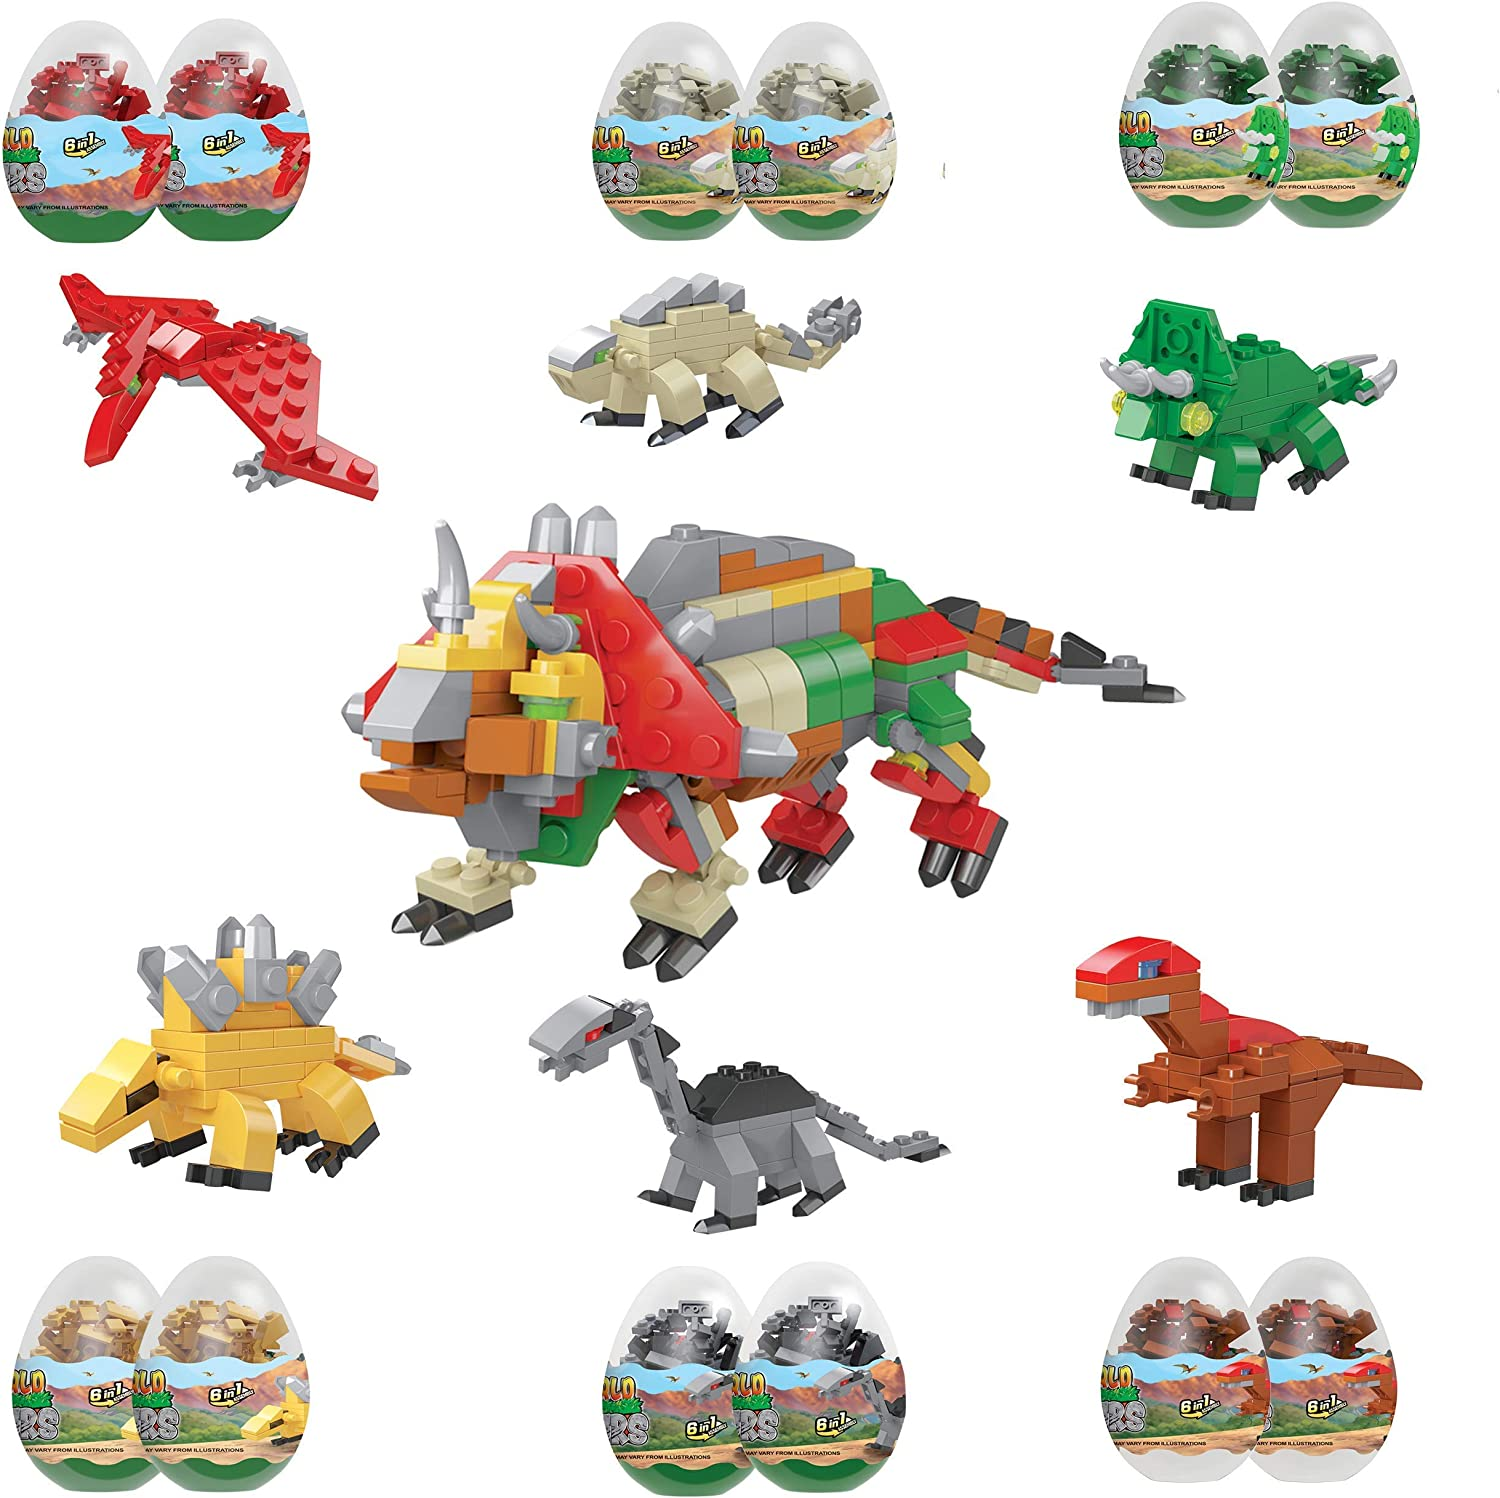 12 Dinosaur 67% OFF Tulsa Mall of fixed price Eggs with Dinosaurs Toys - Blocks Building